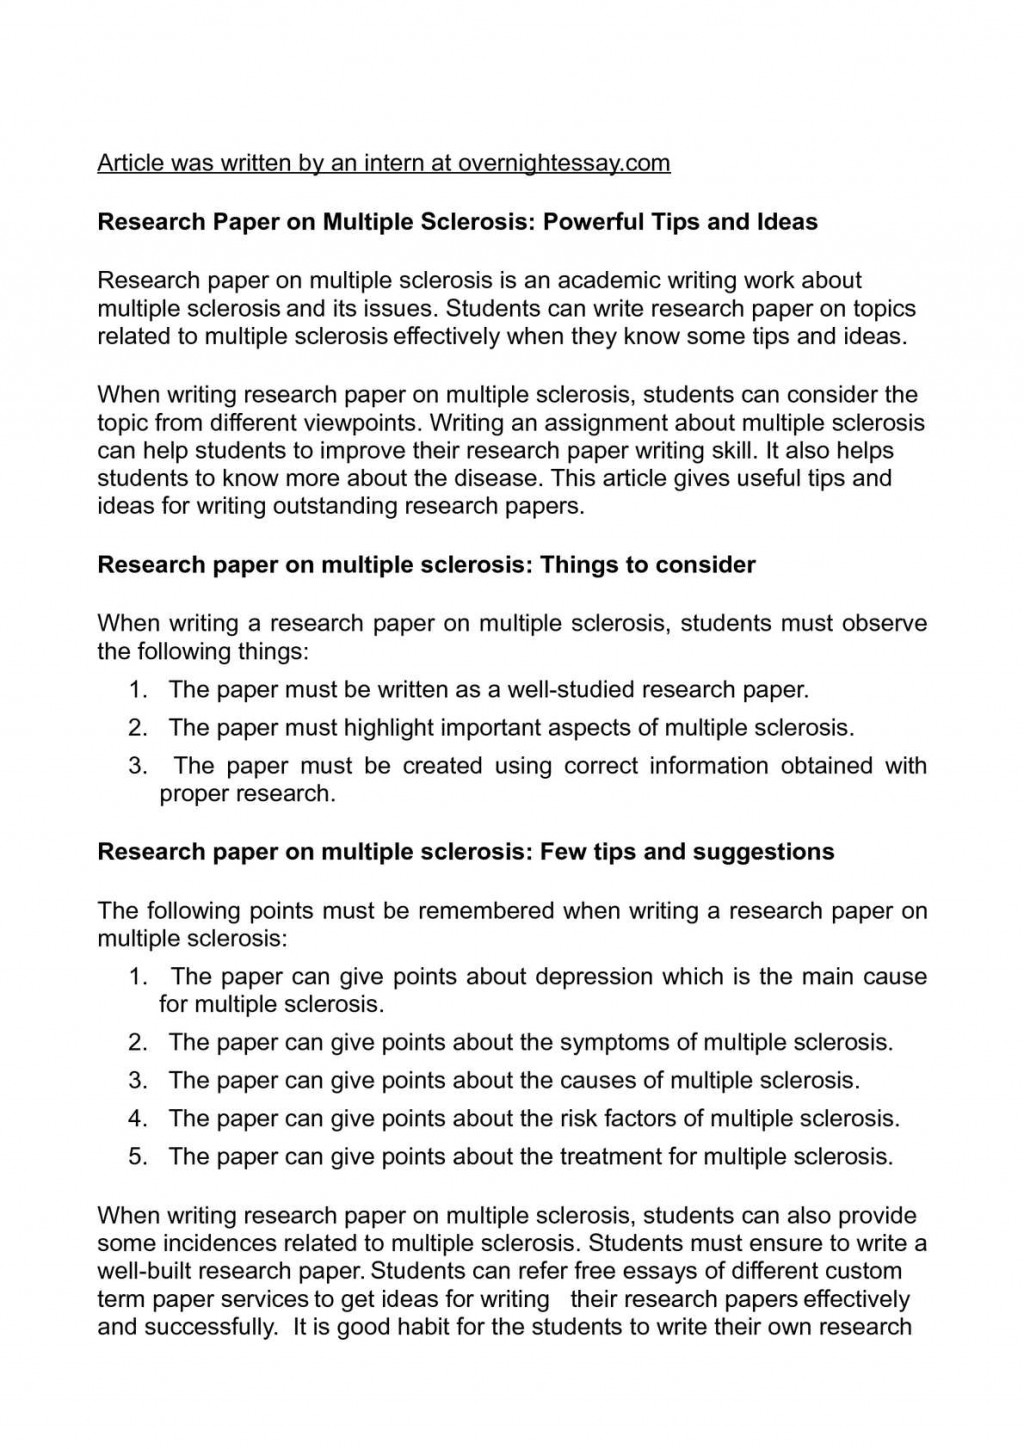 015 Research Paper How To Write Breathtaking A Hook Reference Conclusion For Pdf Large